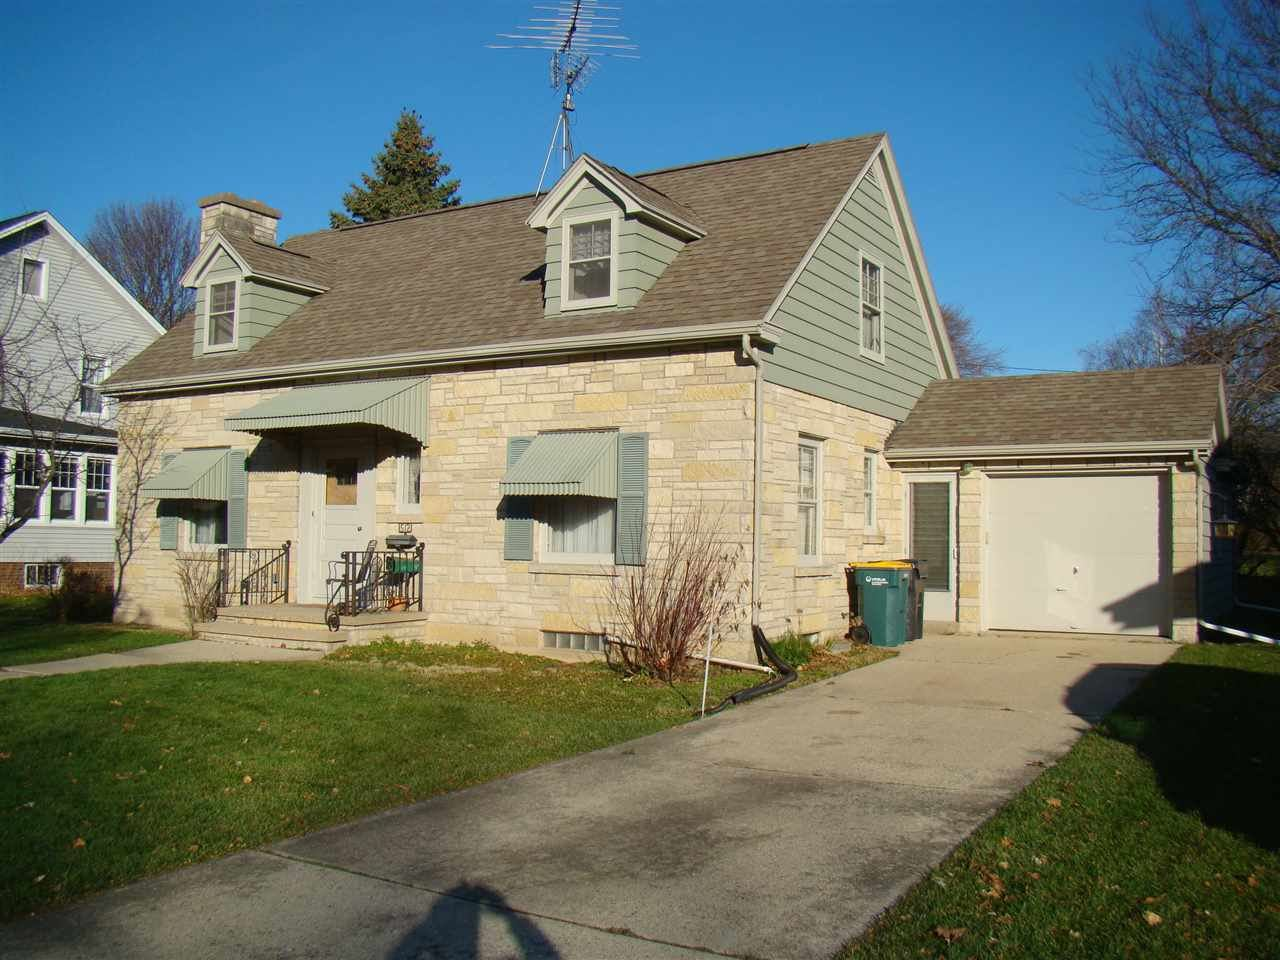 512 W Maple Ave, Beaver Dam, WI 53091 - #: 1898290